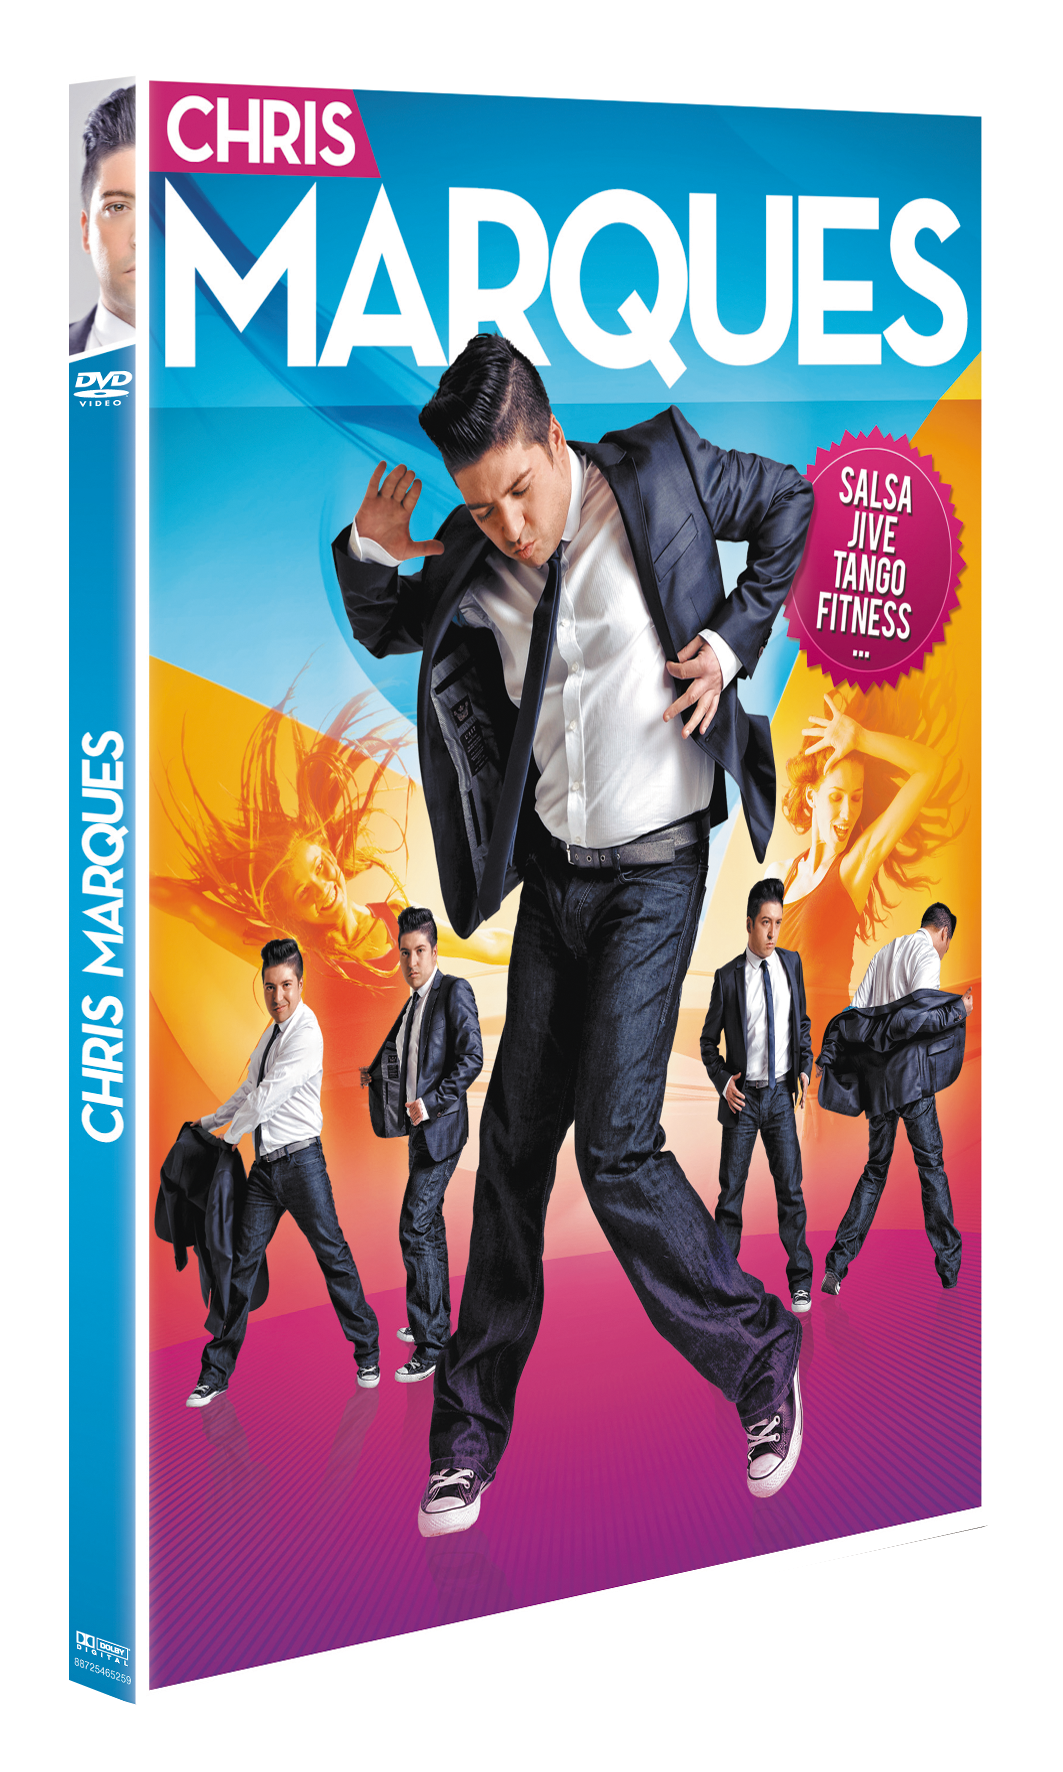 Chris Marques : Dance avec les stars (2012) [ DVDRIP FRENCH]